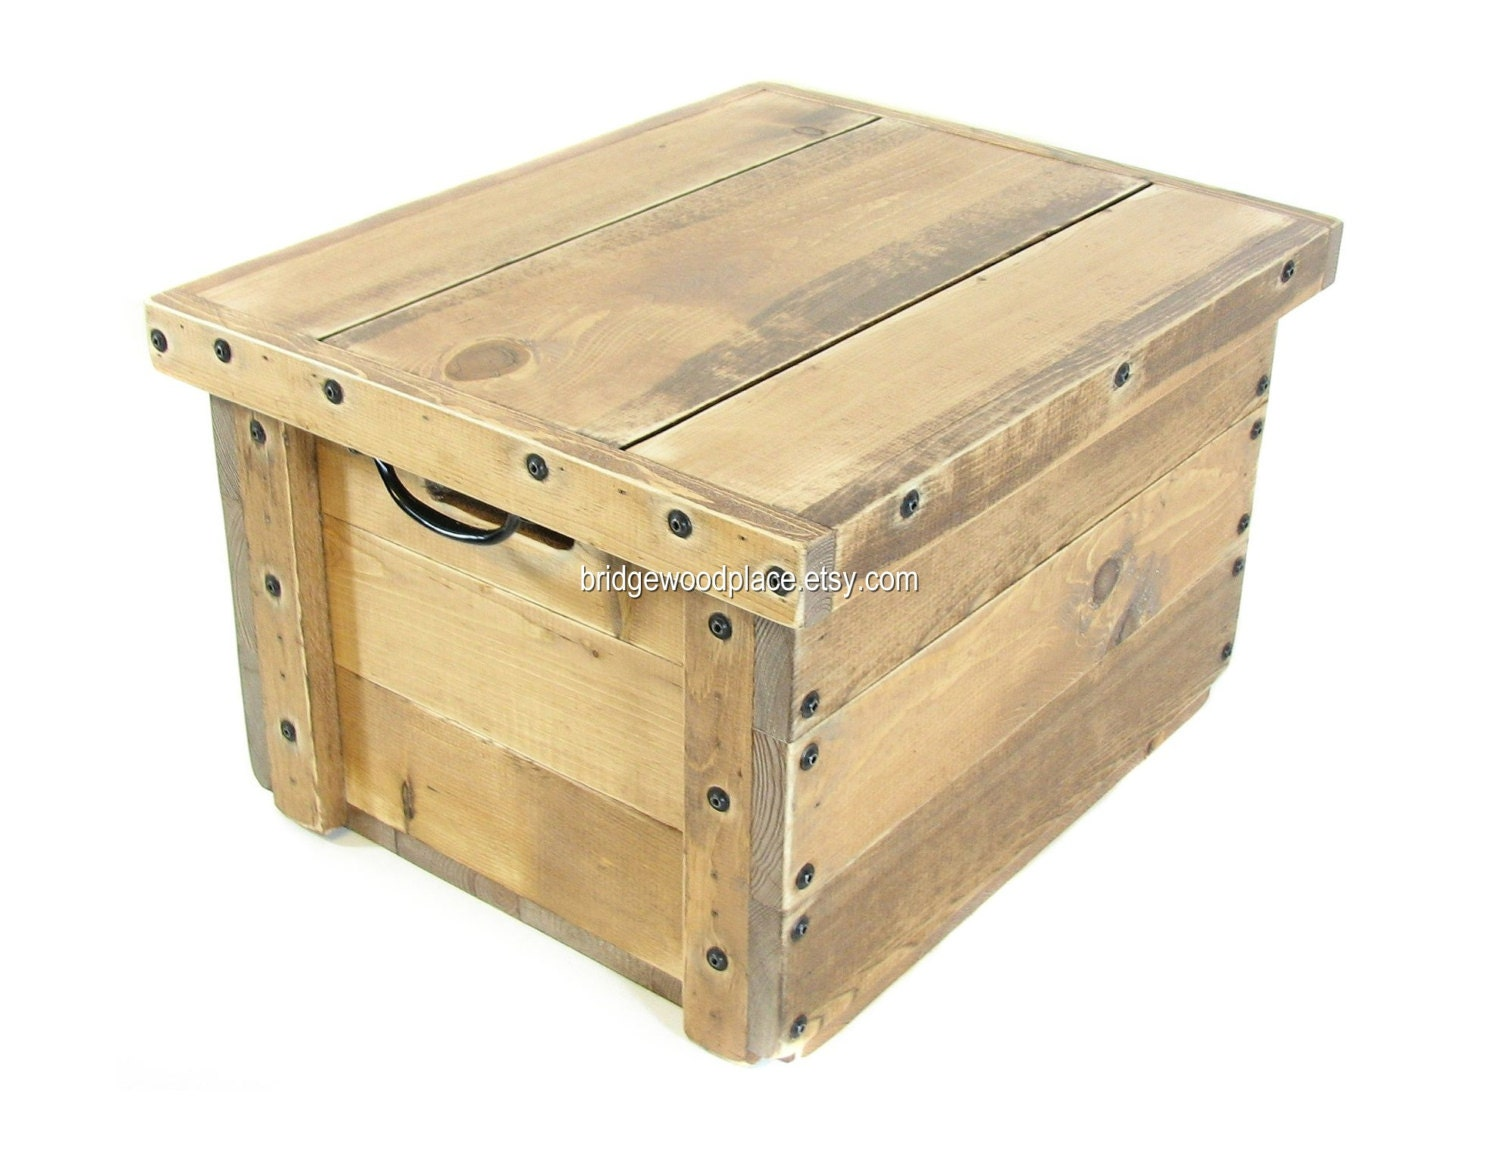 wood crate with lid rustic wooden box by bridgewoodplace on etsy. Black Bedroom Furniture Sets. Home Design Ideas